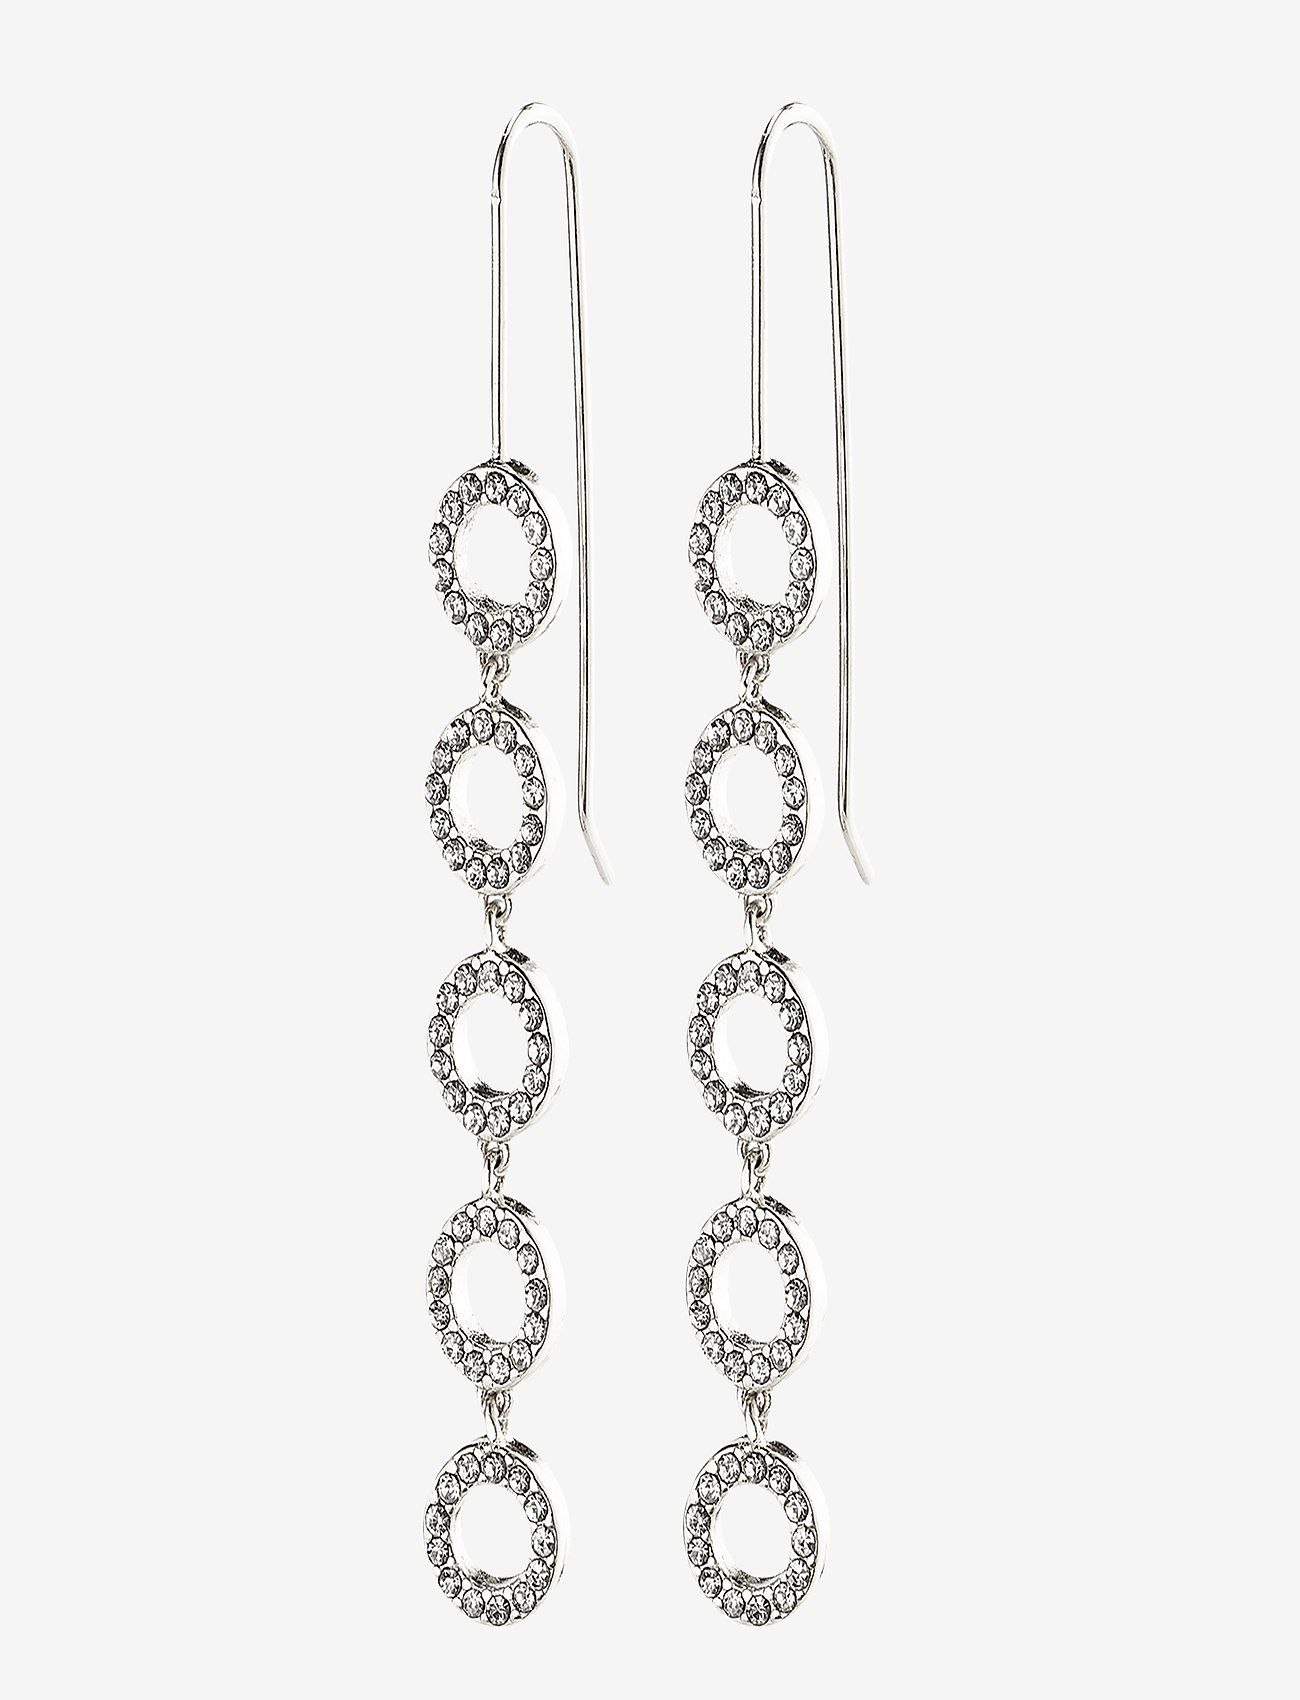 Pilgrim - Earrings : Tessa : Silver Plated : Crystal - statement earrings - silver plated - 0